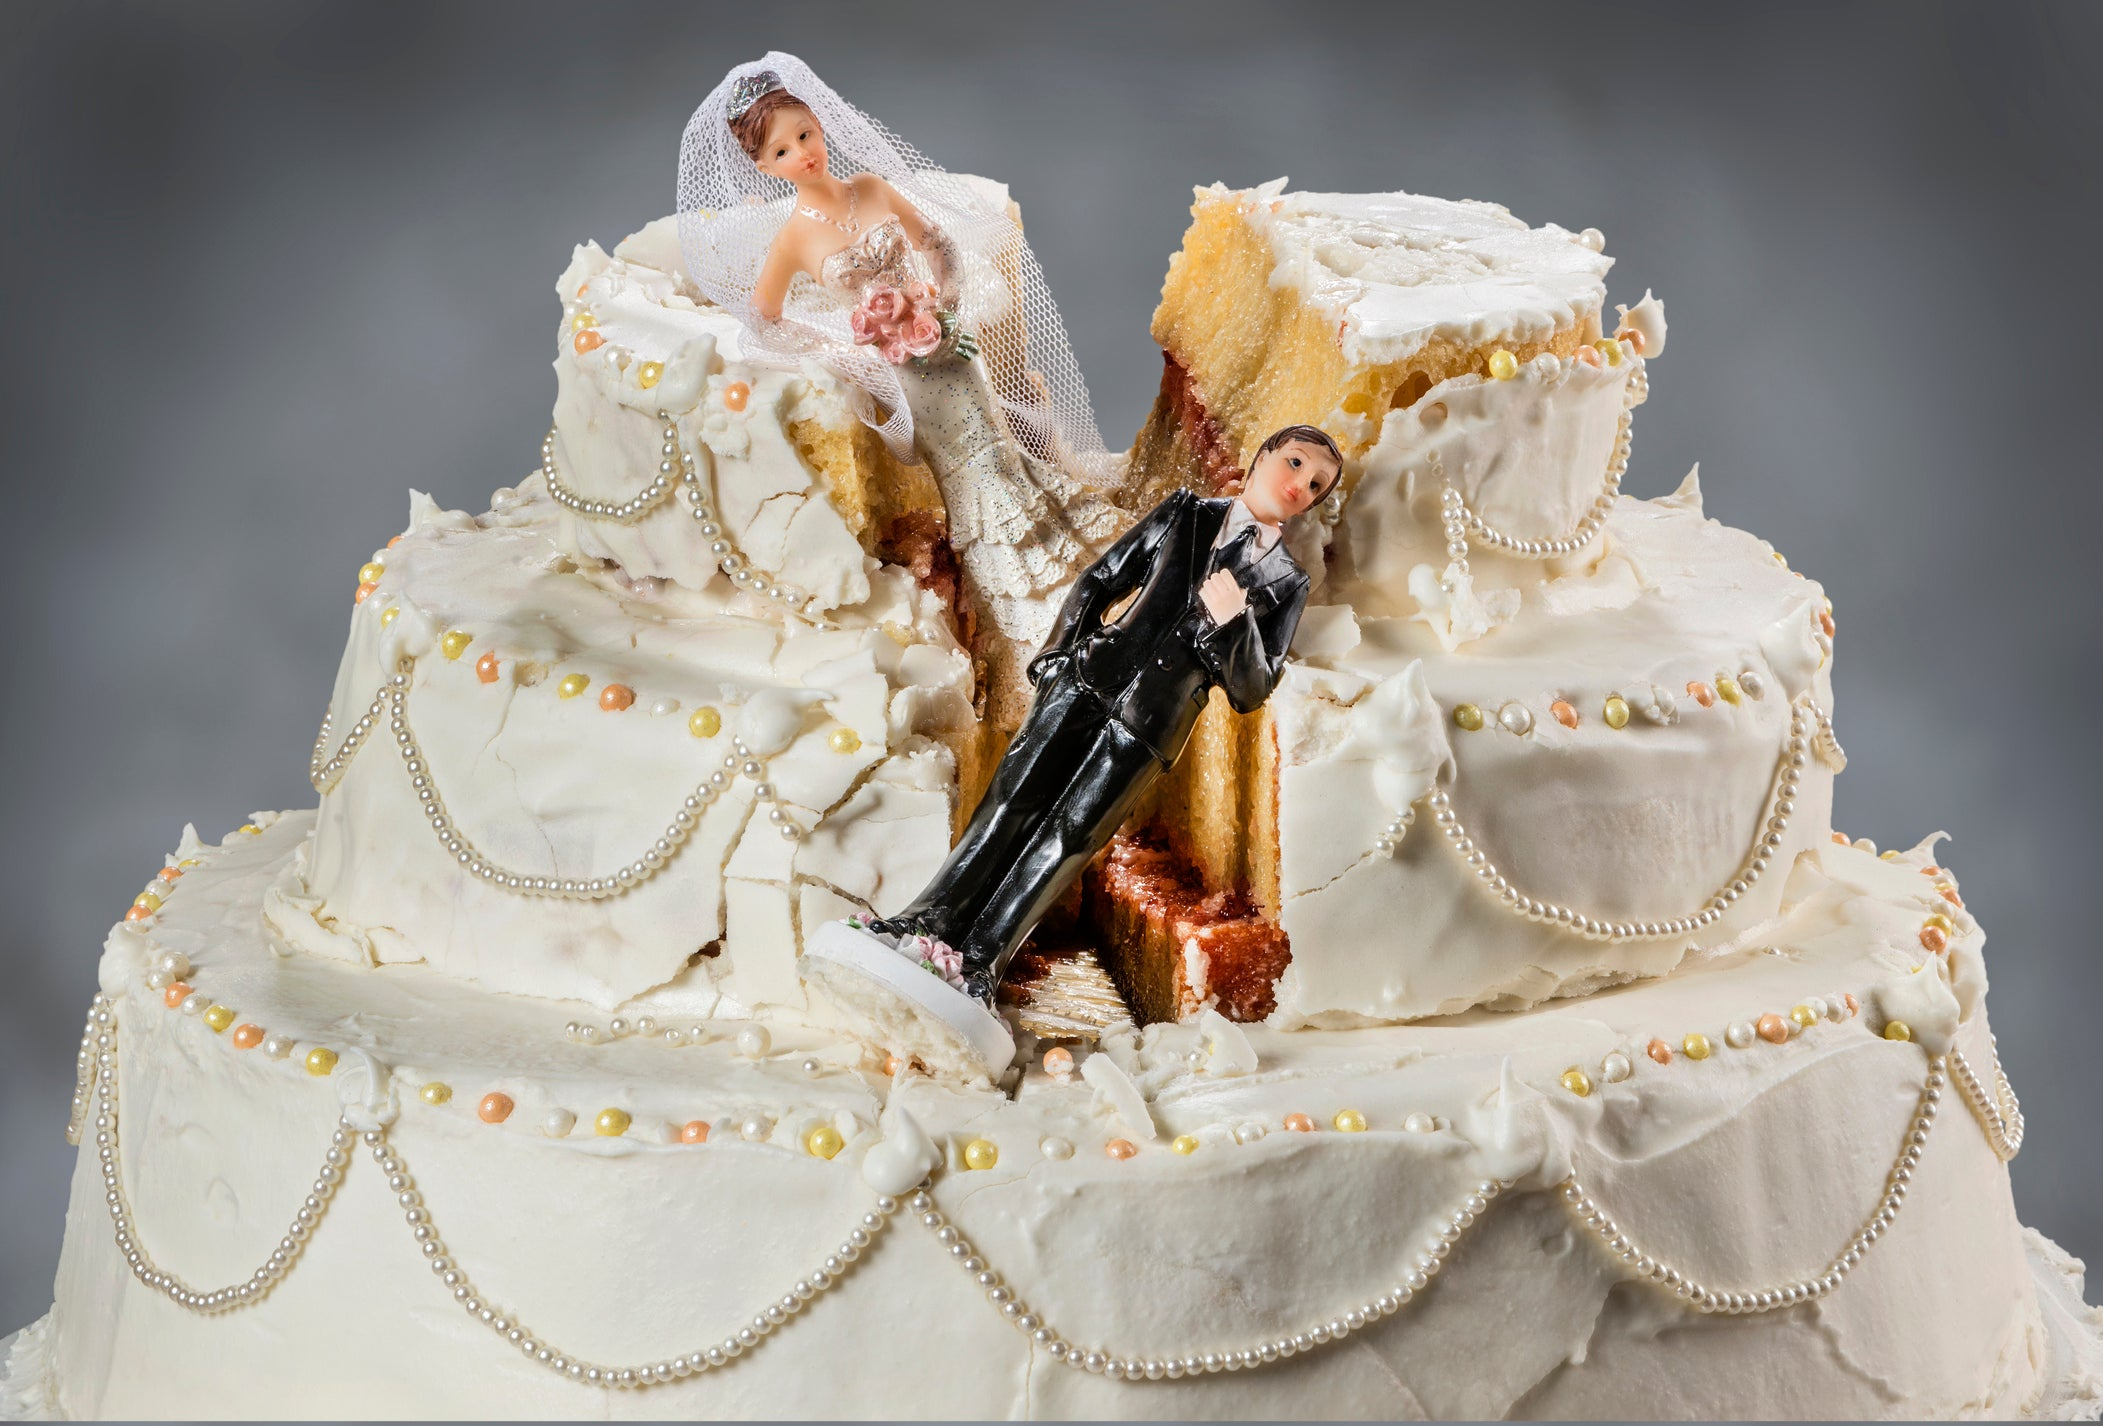 Bridge and groom figurines sink into a cut-up wedding cake.